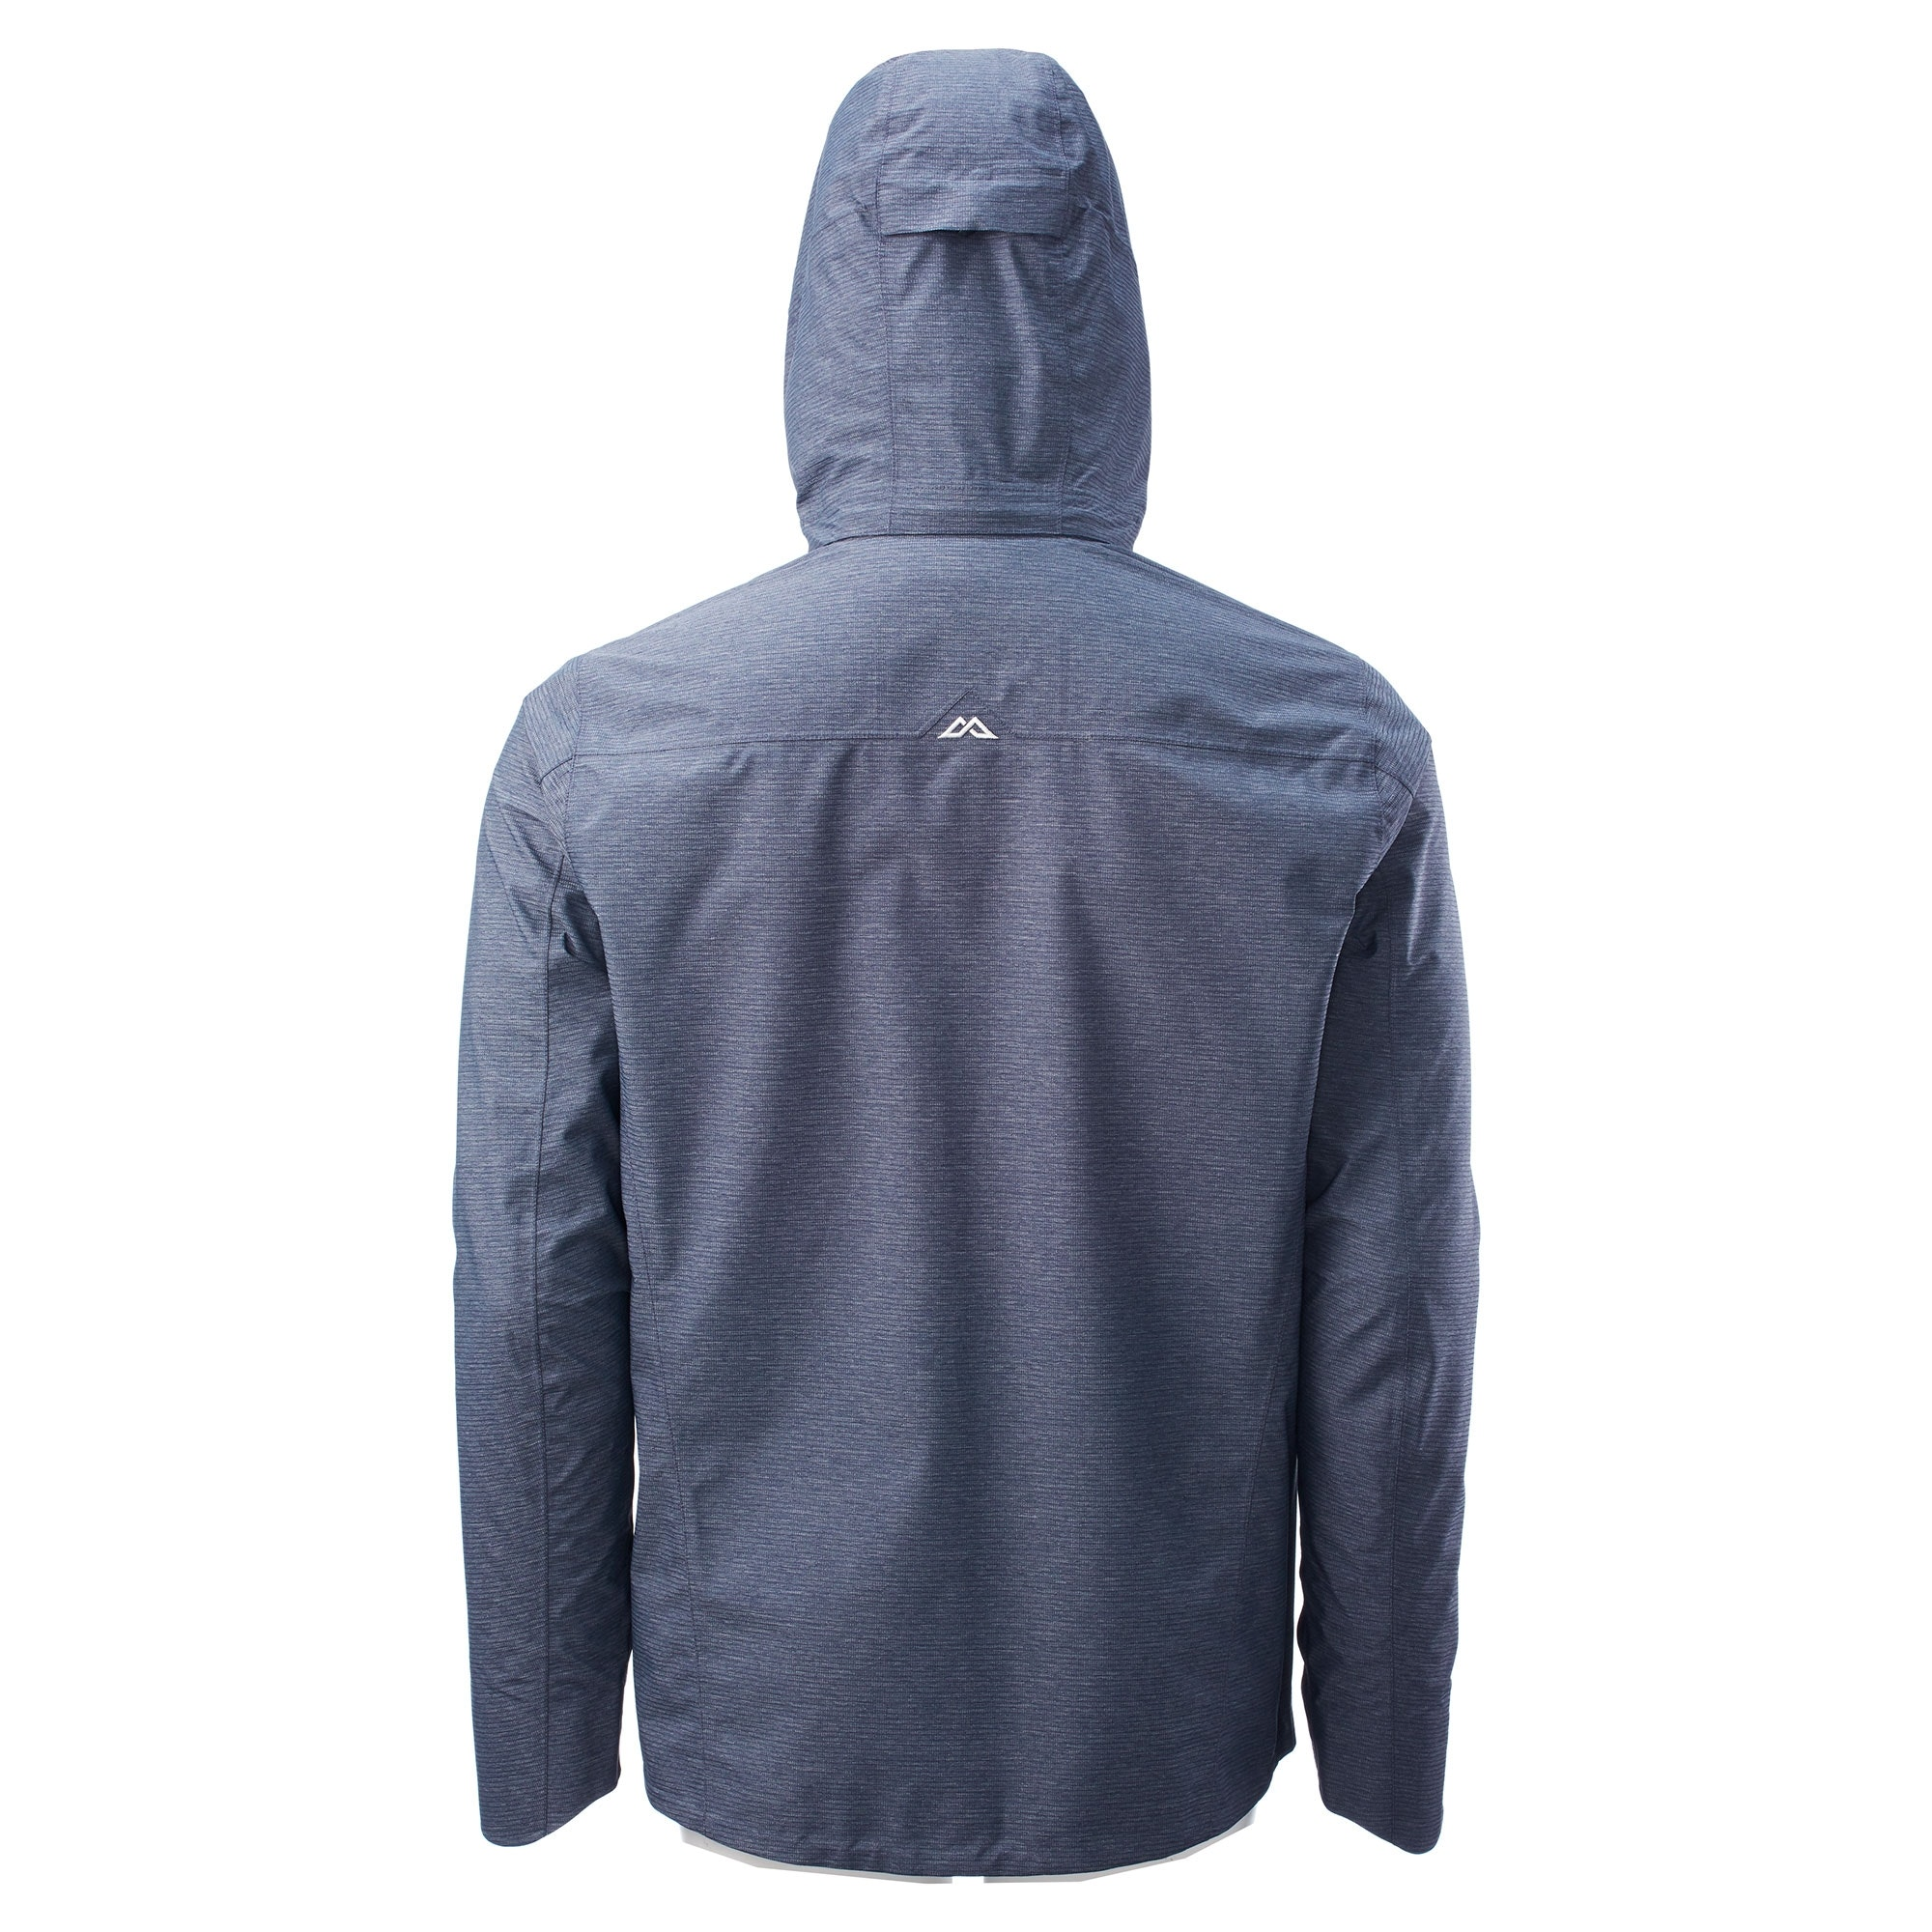 NEW-Kathmandu-Lawrence-Men-039-s-ngx-Windproof-Waterproof-Outdoor-Rain-Jacket-v2 thumbnail 13